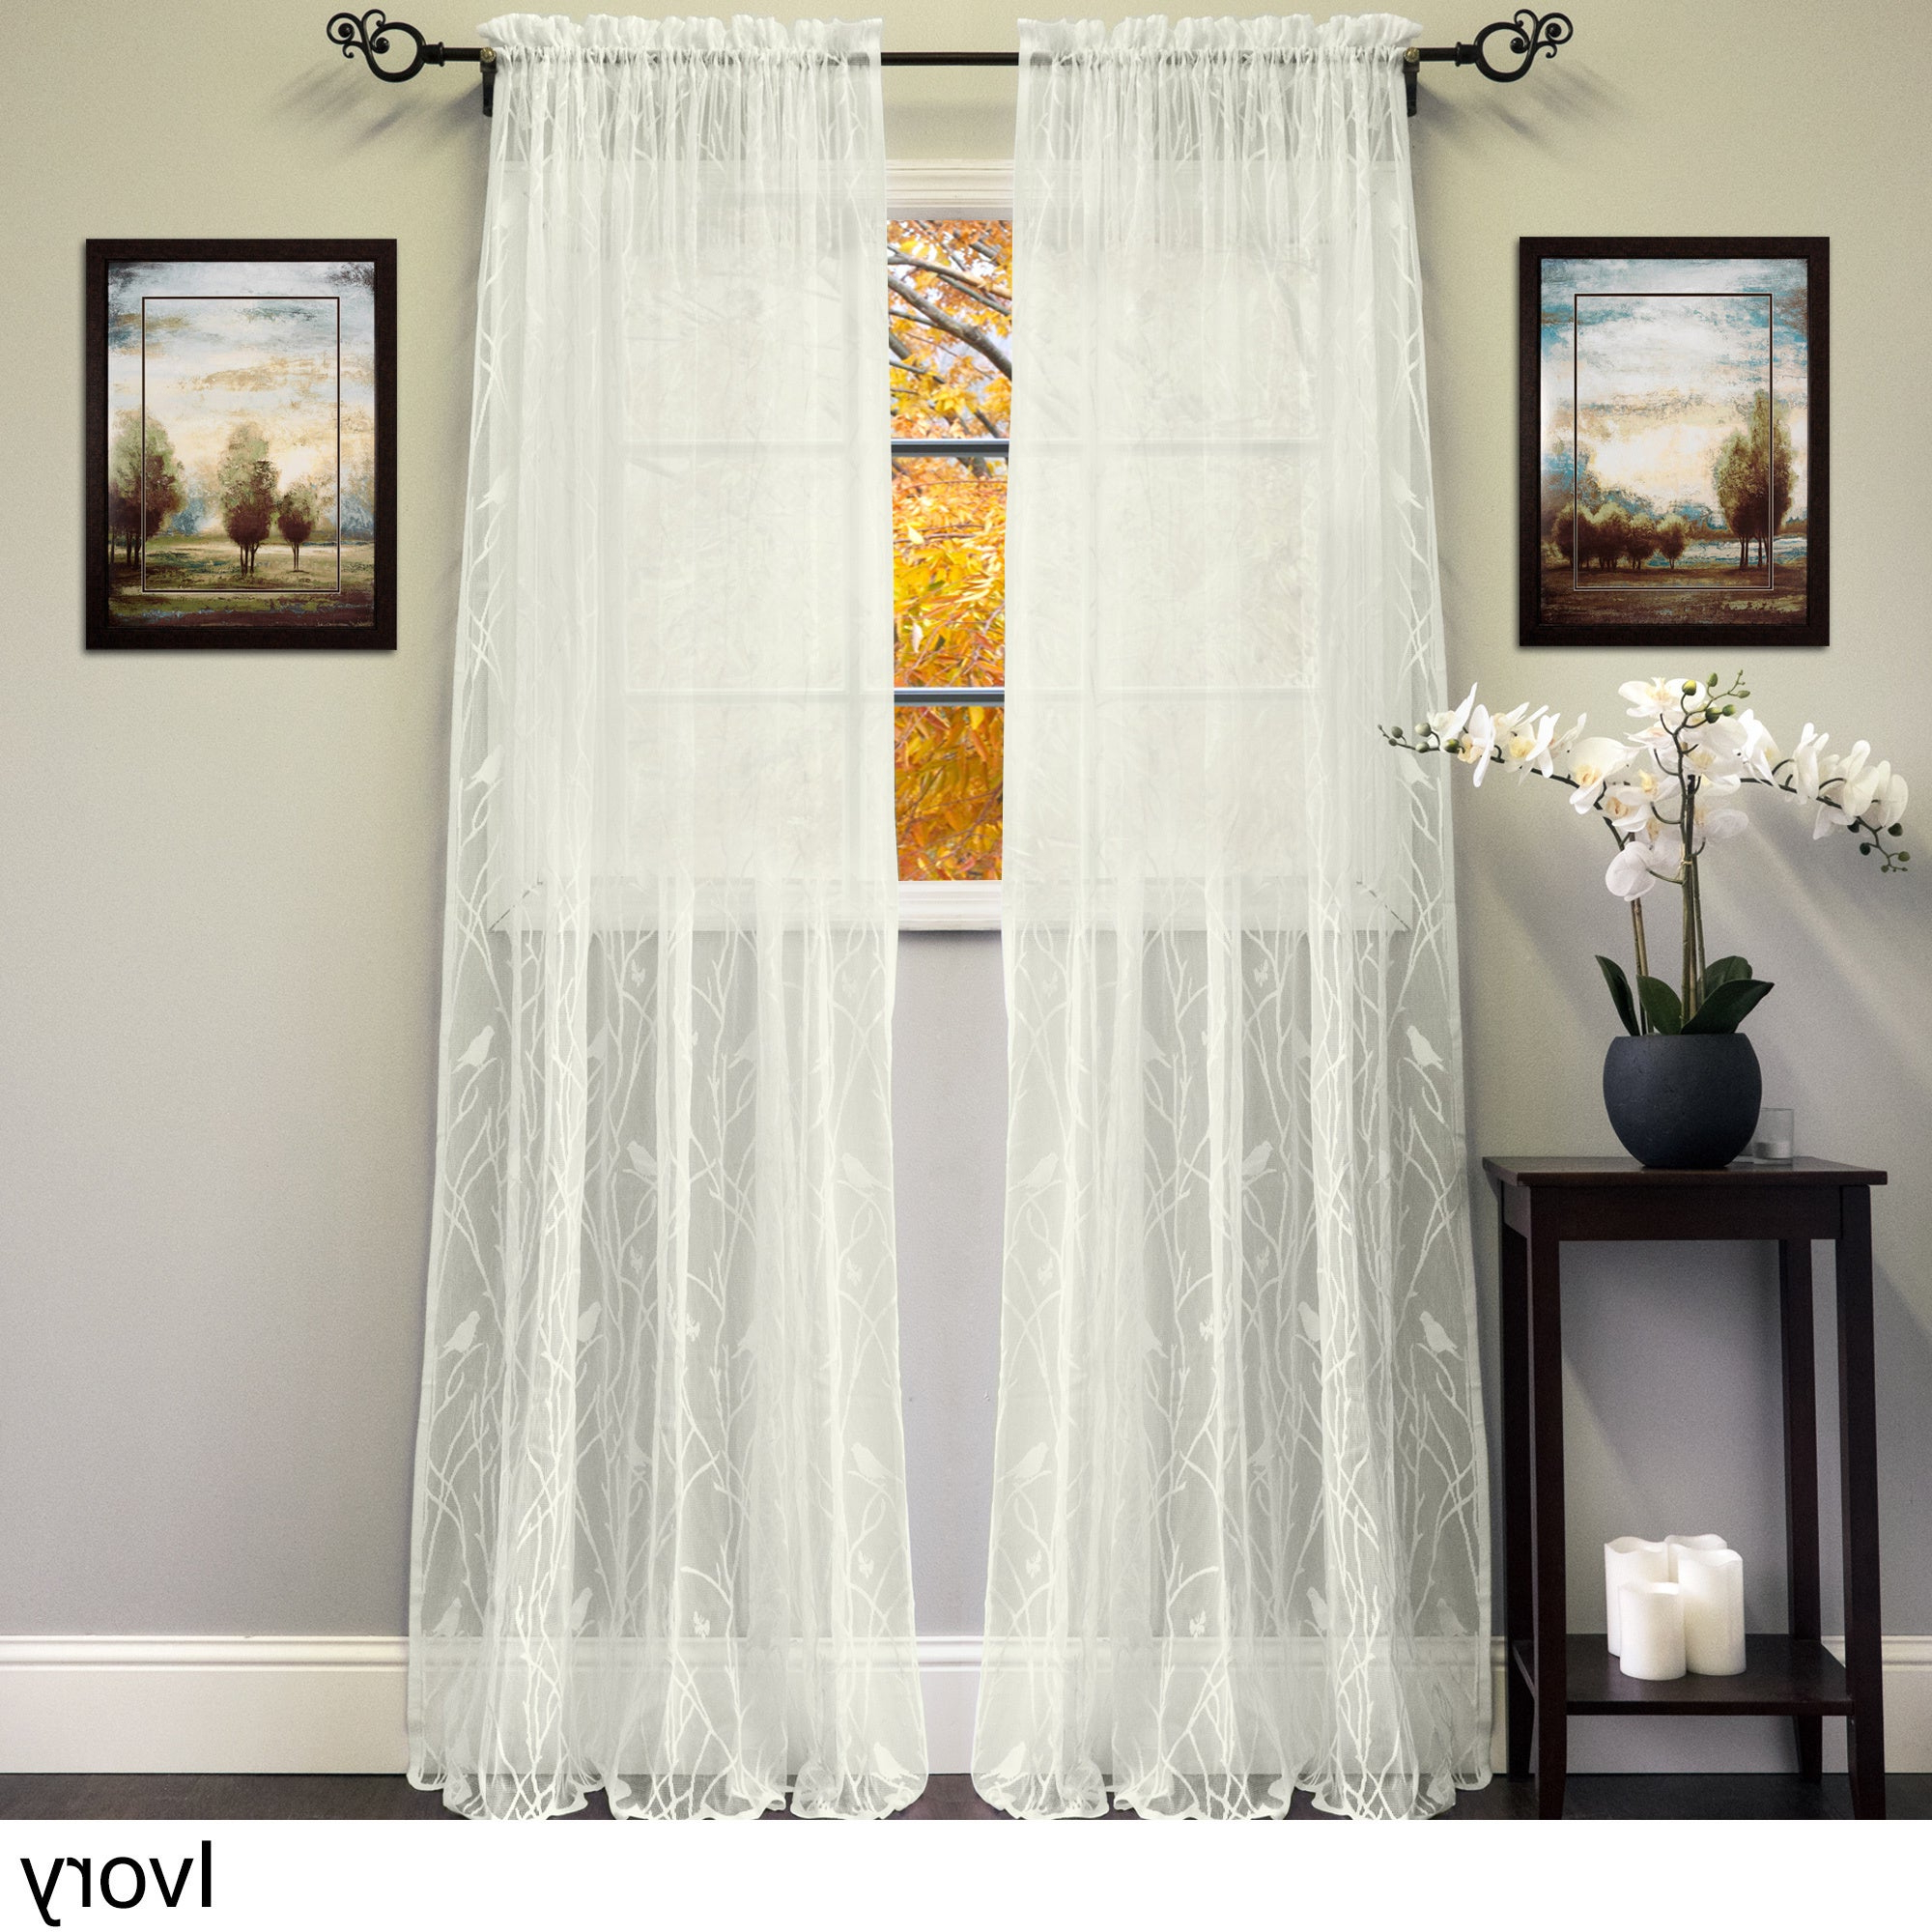 2021 White/ivory 56 Inch X 84 Inch Knit Lace Bird Motif Window Curtain Panel – 56 X 84 With Ivory Knit Lace Bird Motif Window Curtain (View 3 of 20)